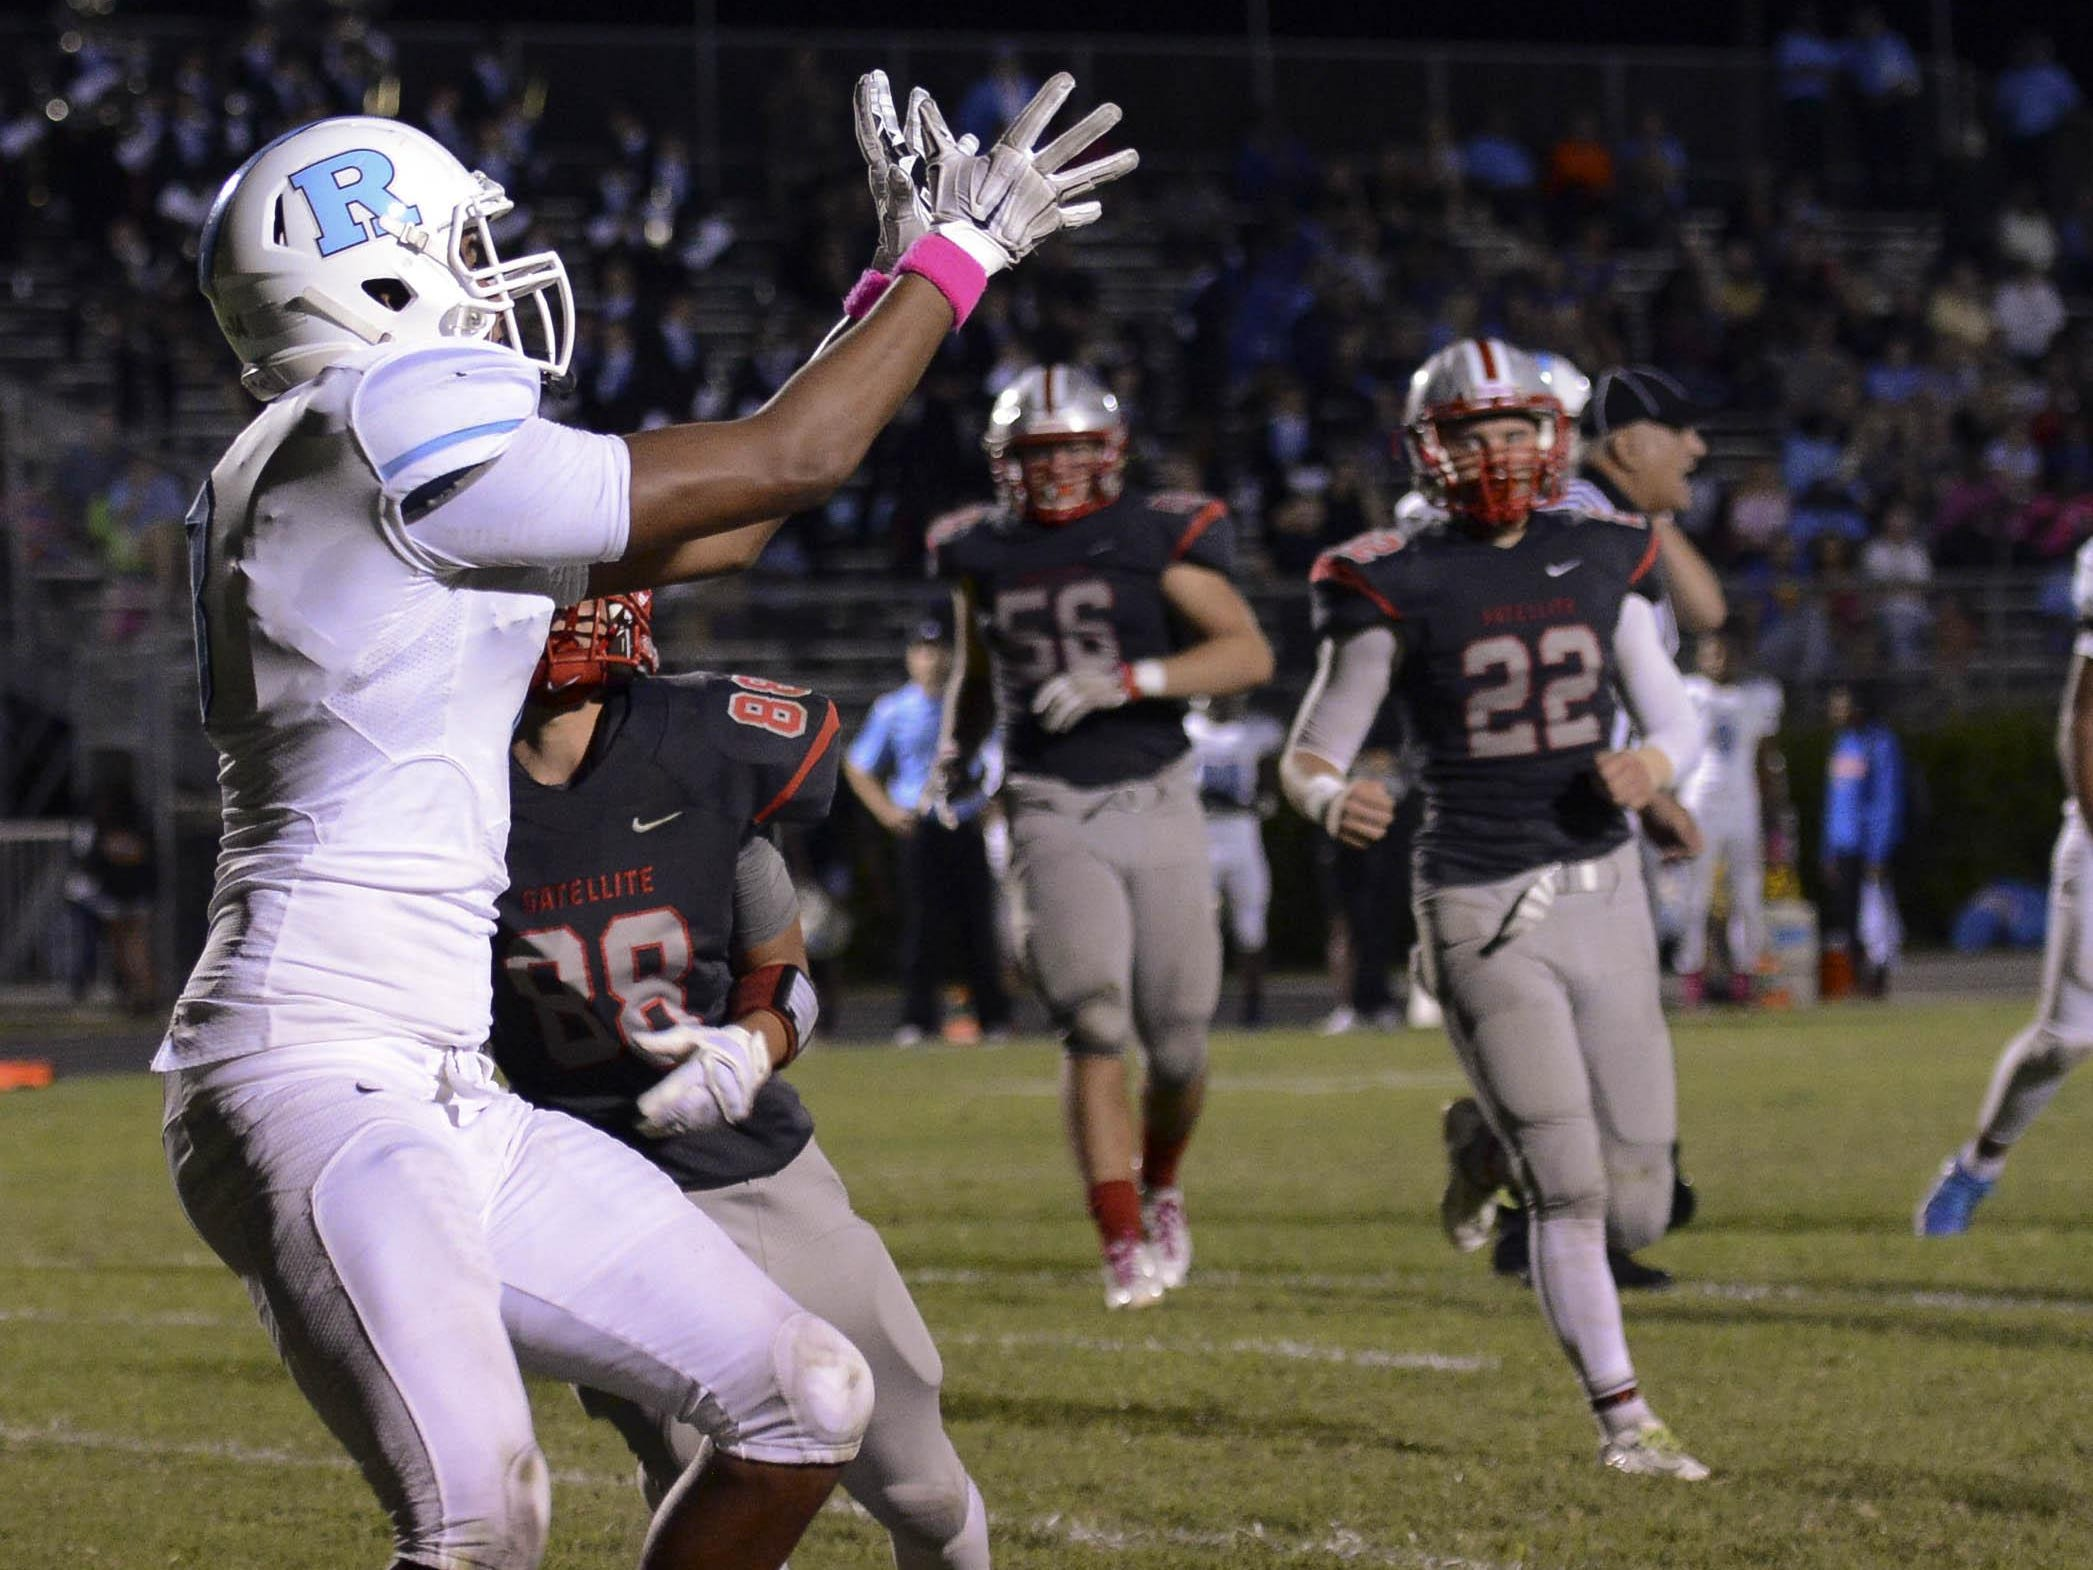 Rockledge's Kieran Goodrich catches a pass for the 2 point conversion during Friday's game against Satellite.